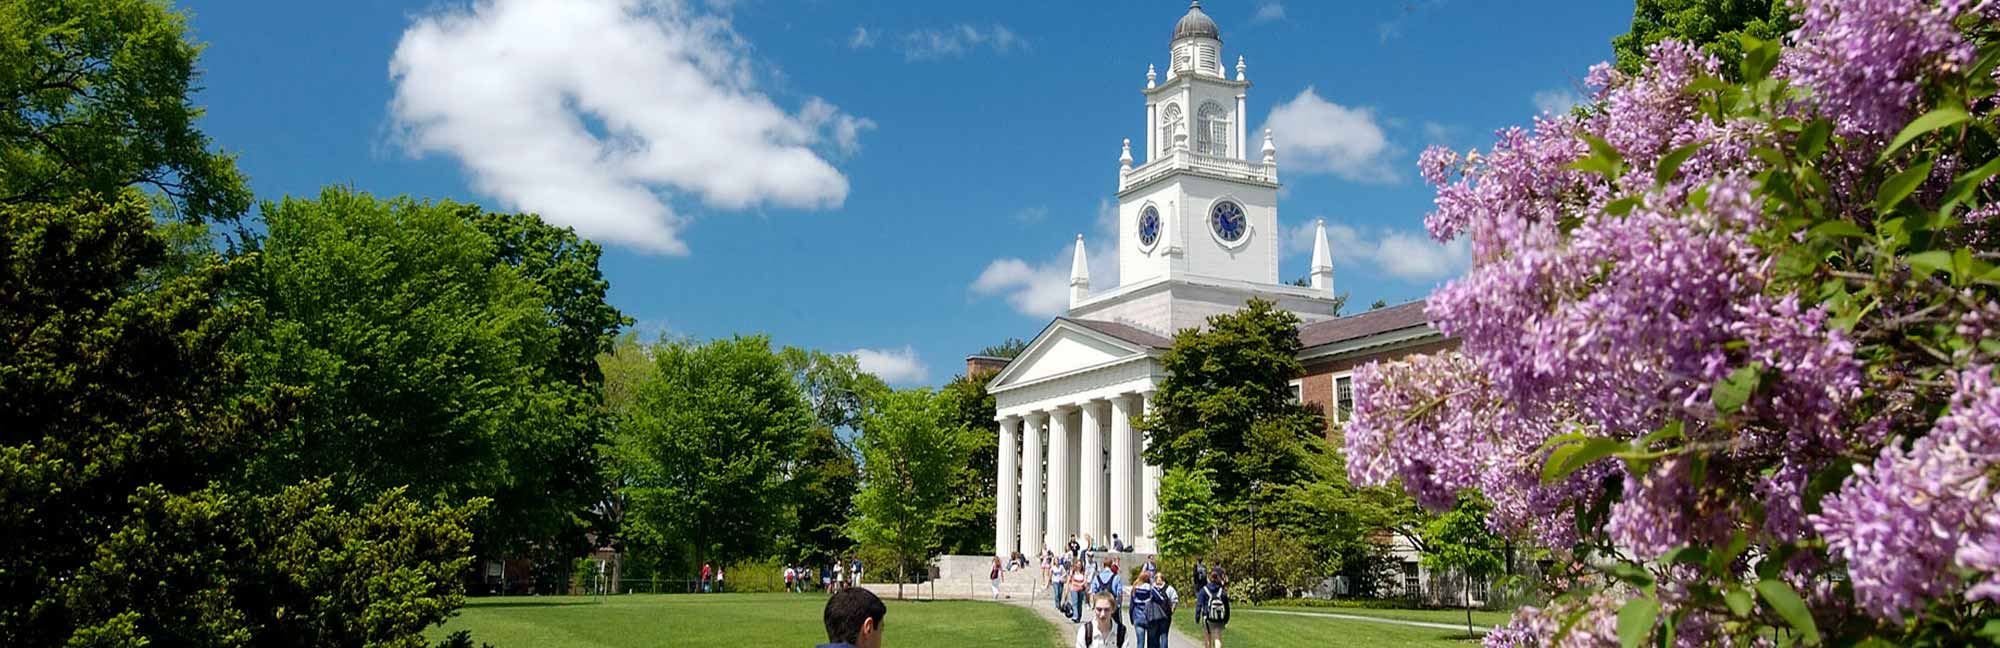 phillips academy in andover  ma